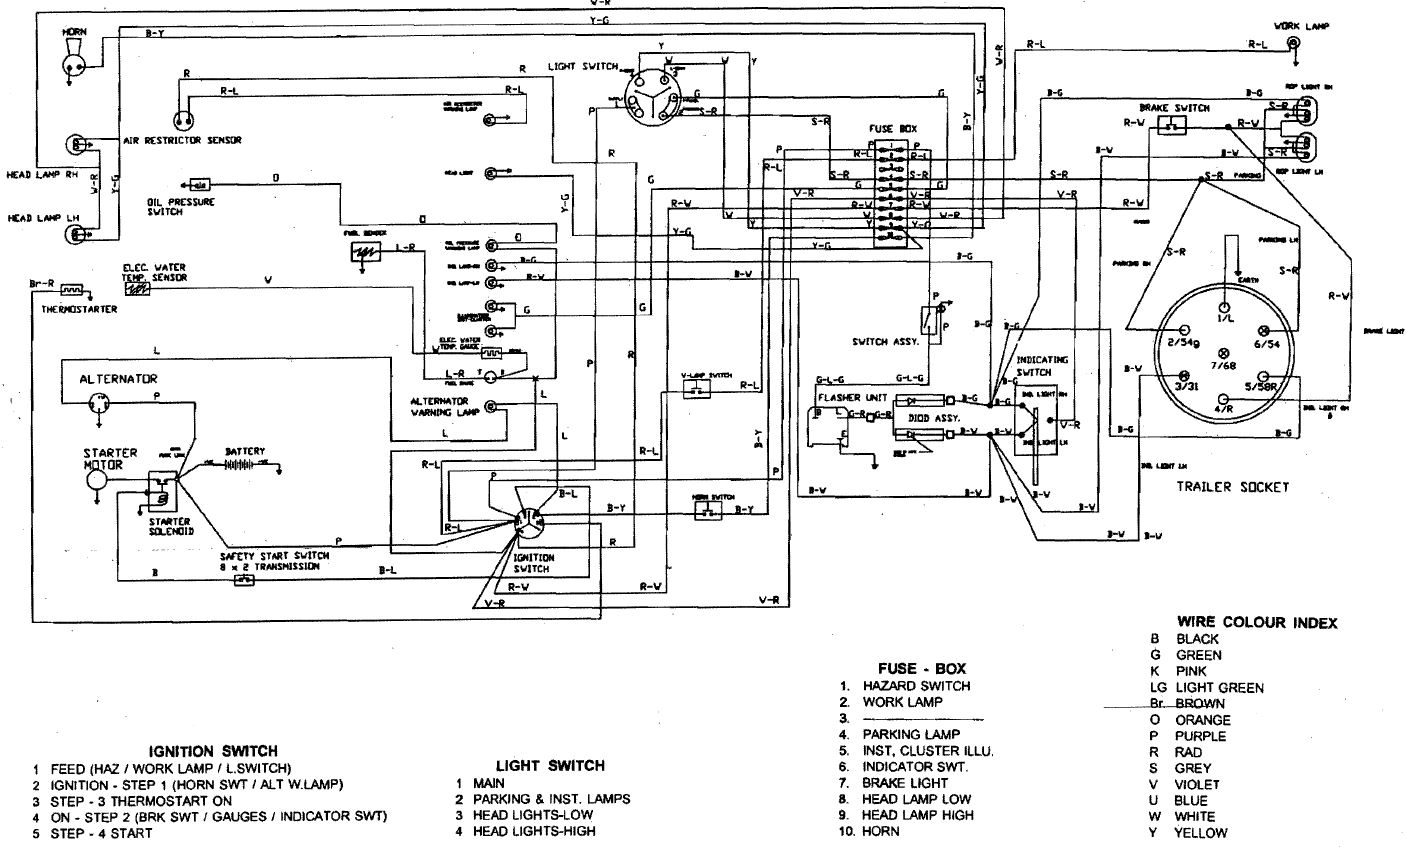 20158463319_b82d524c3d_o ignition switch wiring diagram john deere lawn mower wiring diagram at eliteediting.co